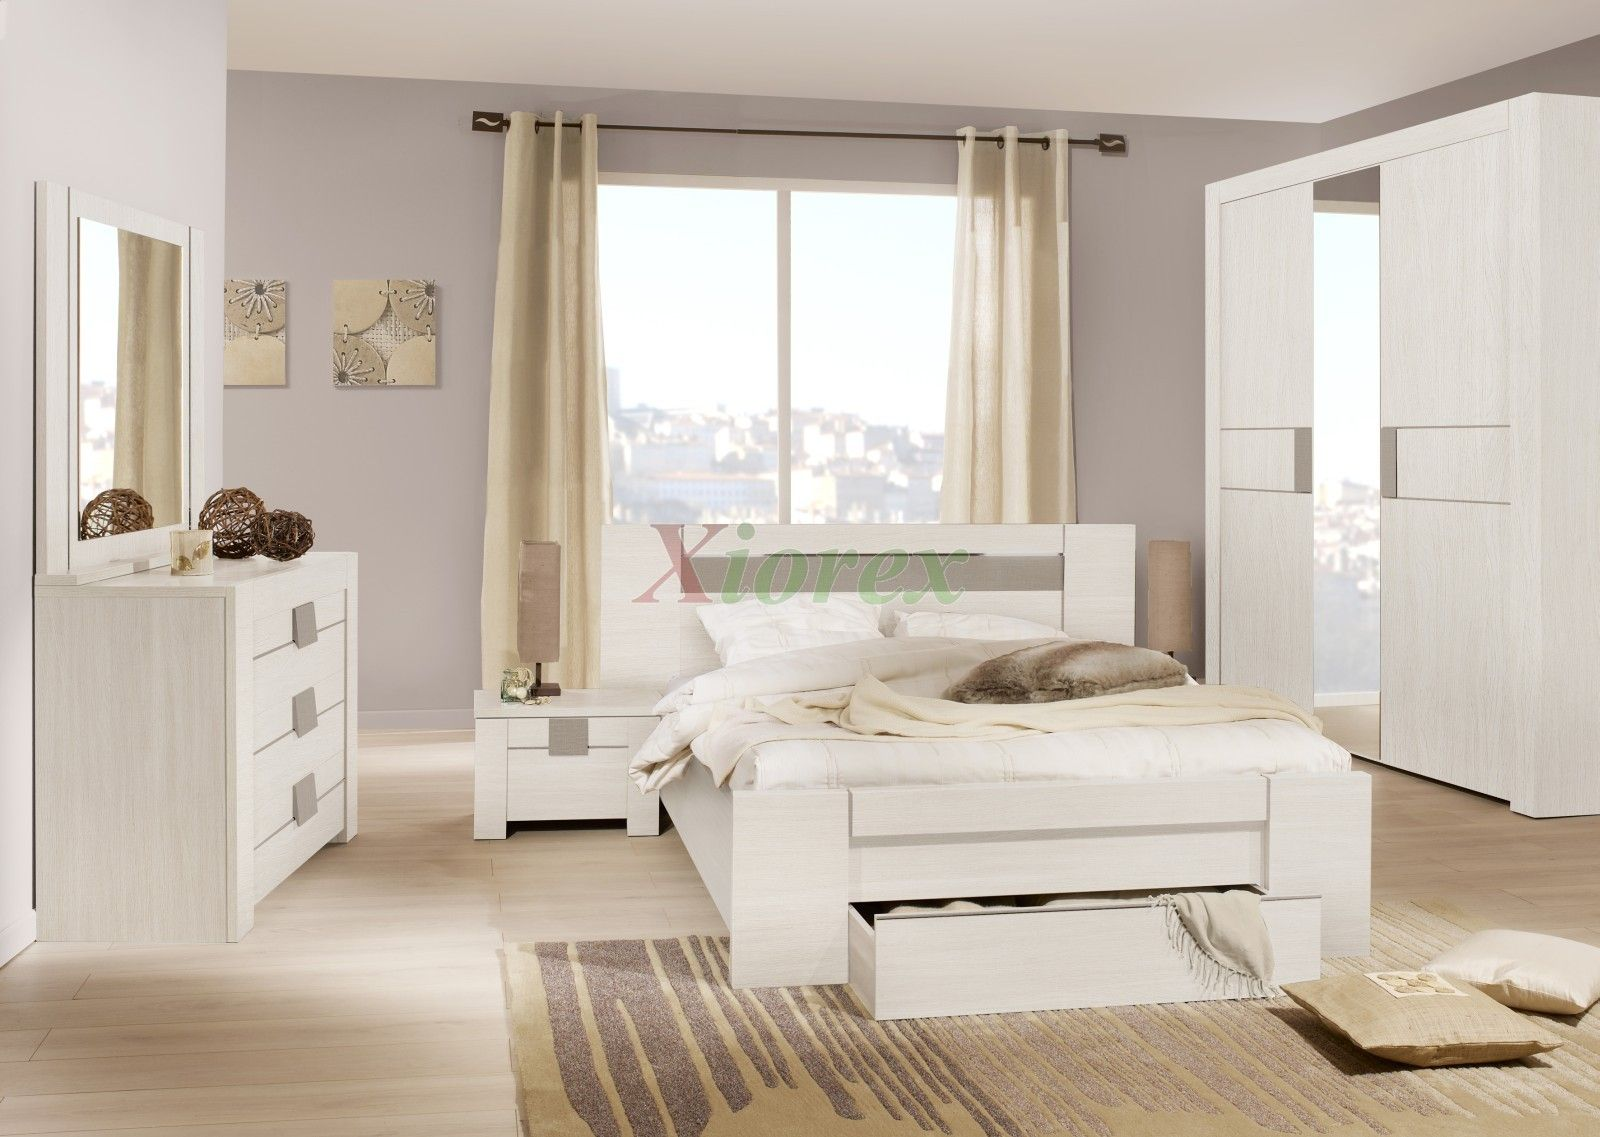 Master Bedroom Set White Ash Xiorex Gami Moka Bed Sets By Gautier Are Contemporary European